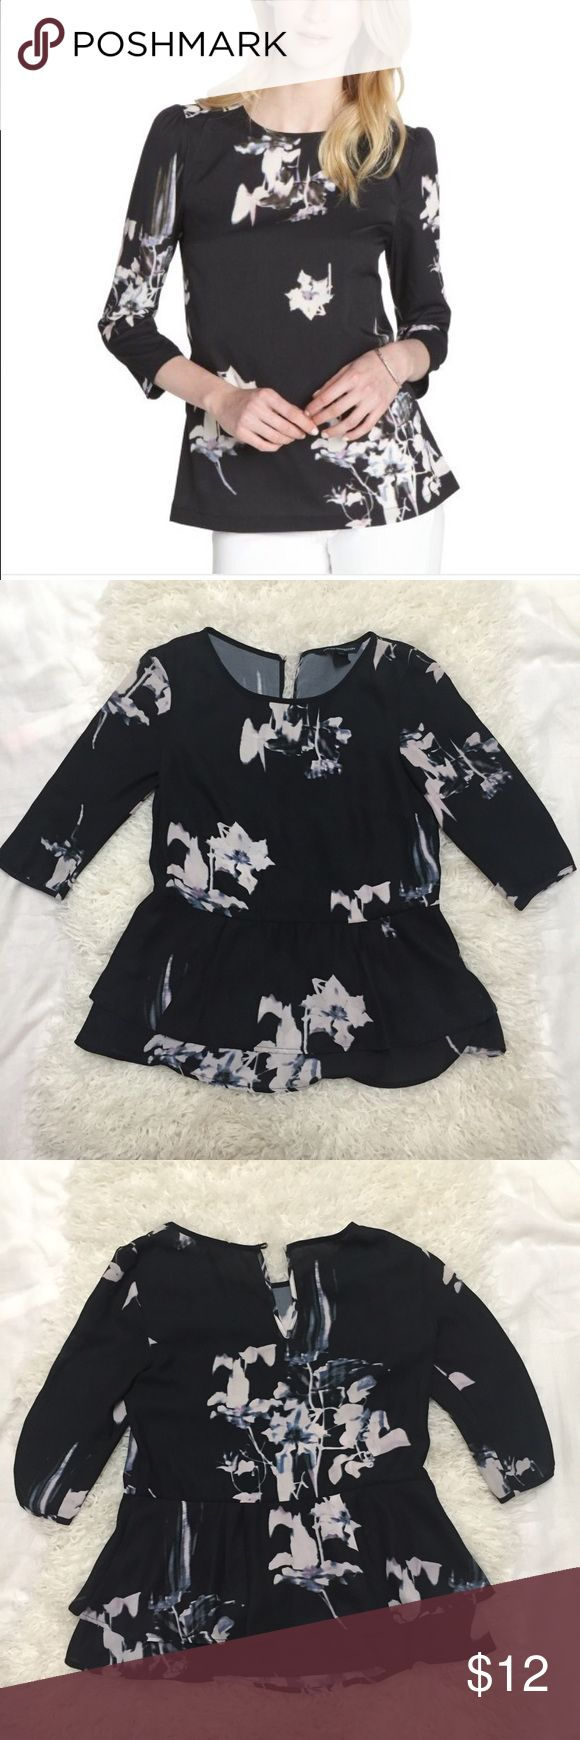 French Connection   floral print blouse Black and white watercolor   floral print   has a button missing in the back and some white marks from thread   imo marks look as part of the shirt it had them when I bought it other than that is so adorable   I so want to keep but is hard feeding a baby :/ French Connection Tops Blouses